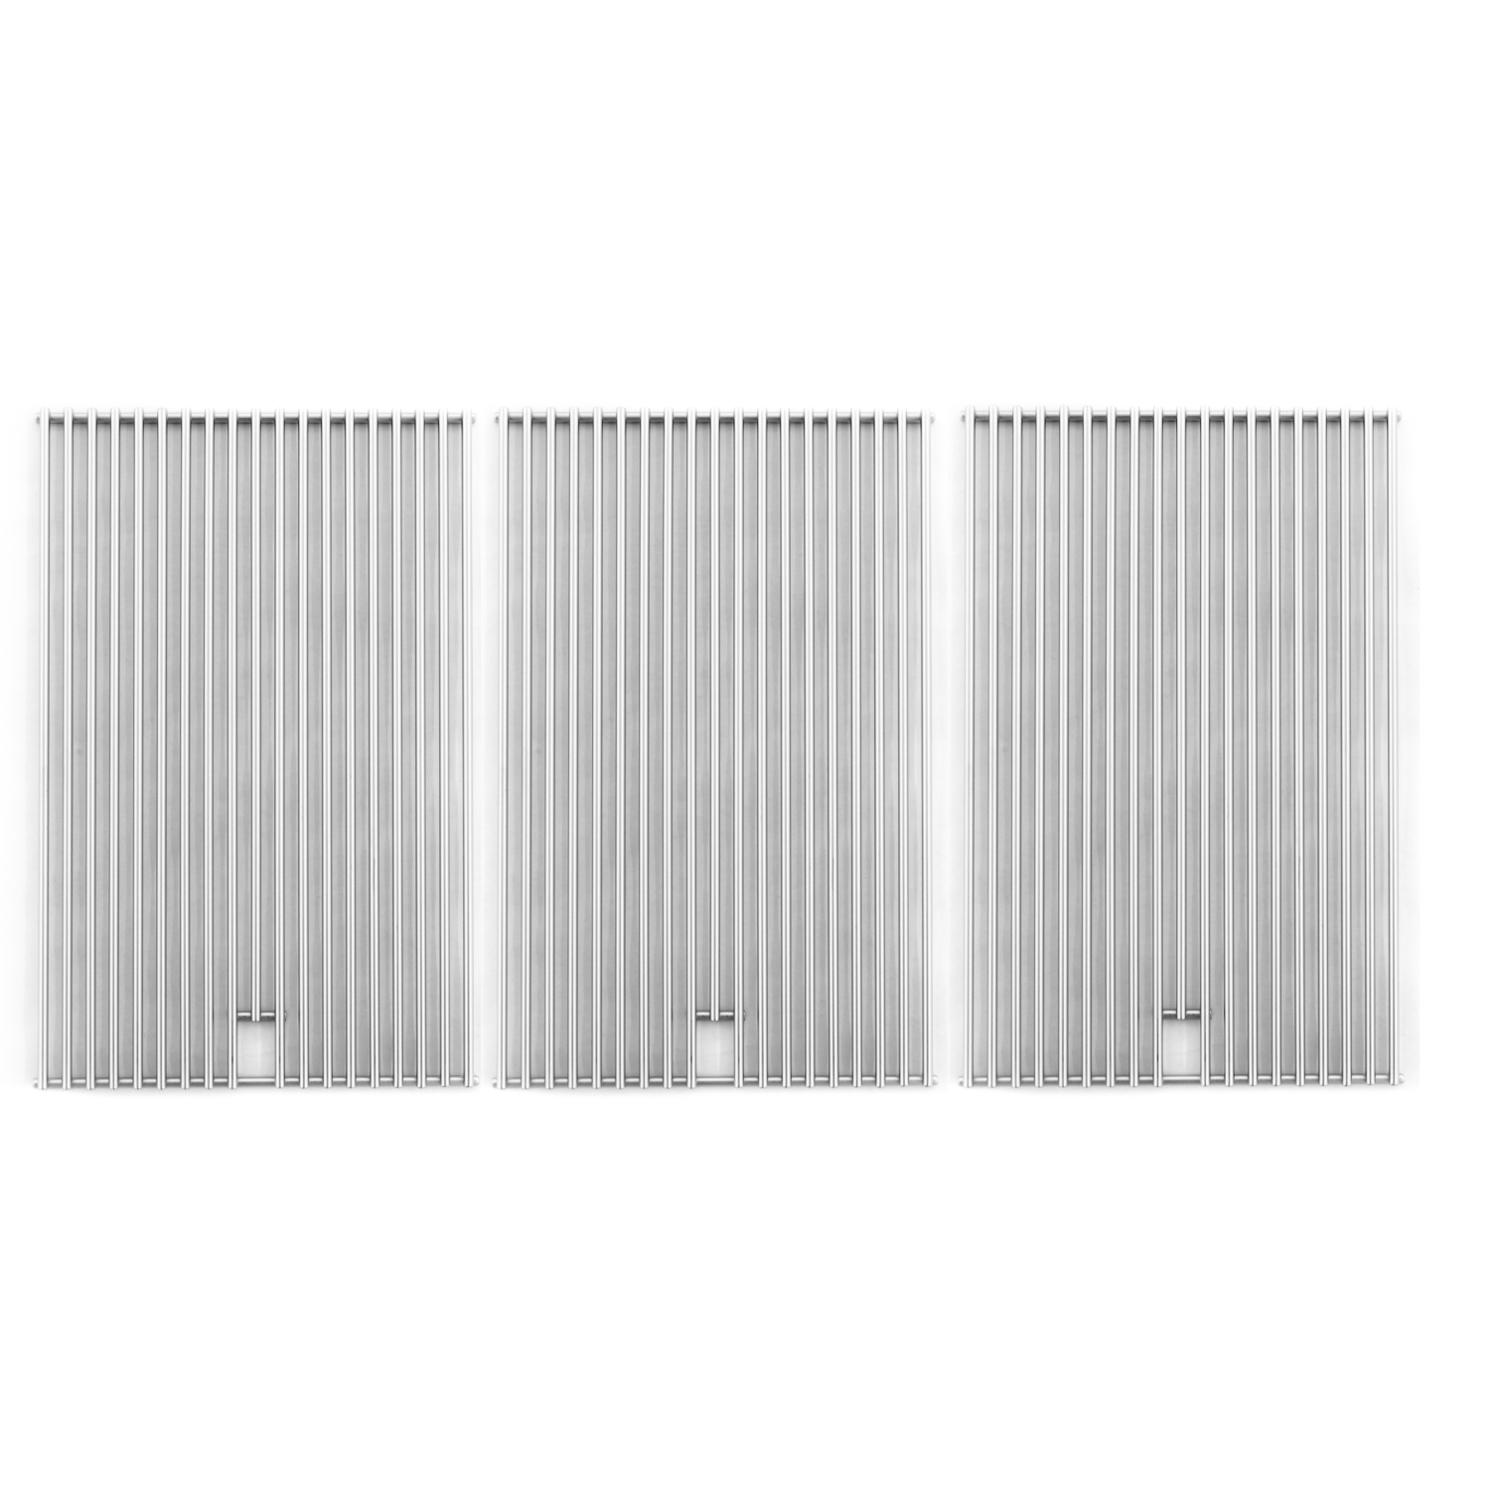 Aog American Outdoor Grill Stainless Steel Cooking Grate For 36 Inch Grill - Set Of Three - 36-b-11